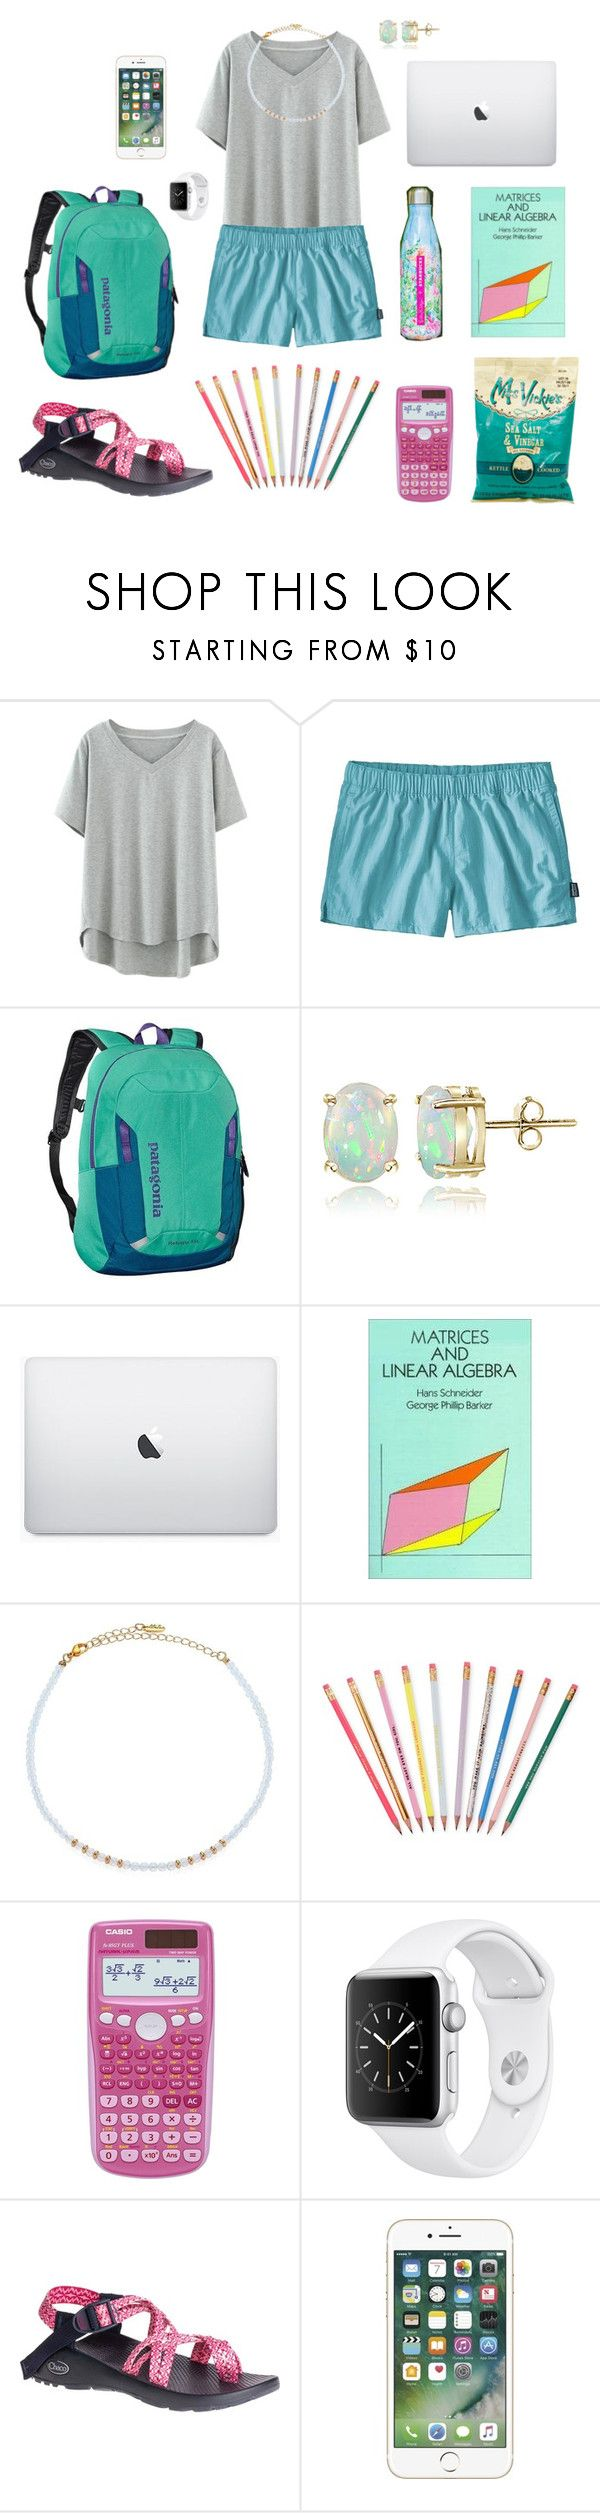 """Library Sesh"" by walzfashion ❤ liked on Polyvore featuring Patagonia, Patagonia Kids, Glitzy Rocks, Barker, Ettika, ban.do, Apple and Chaco"